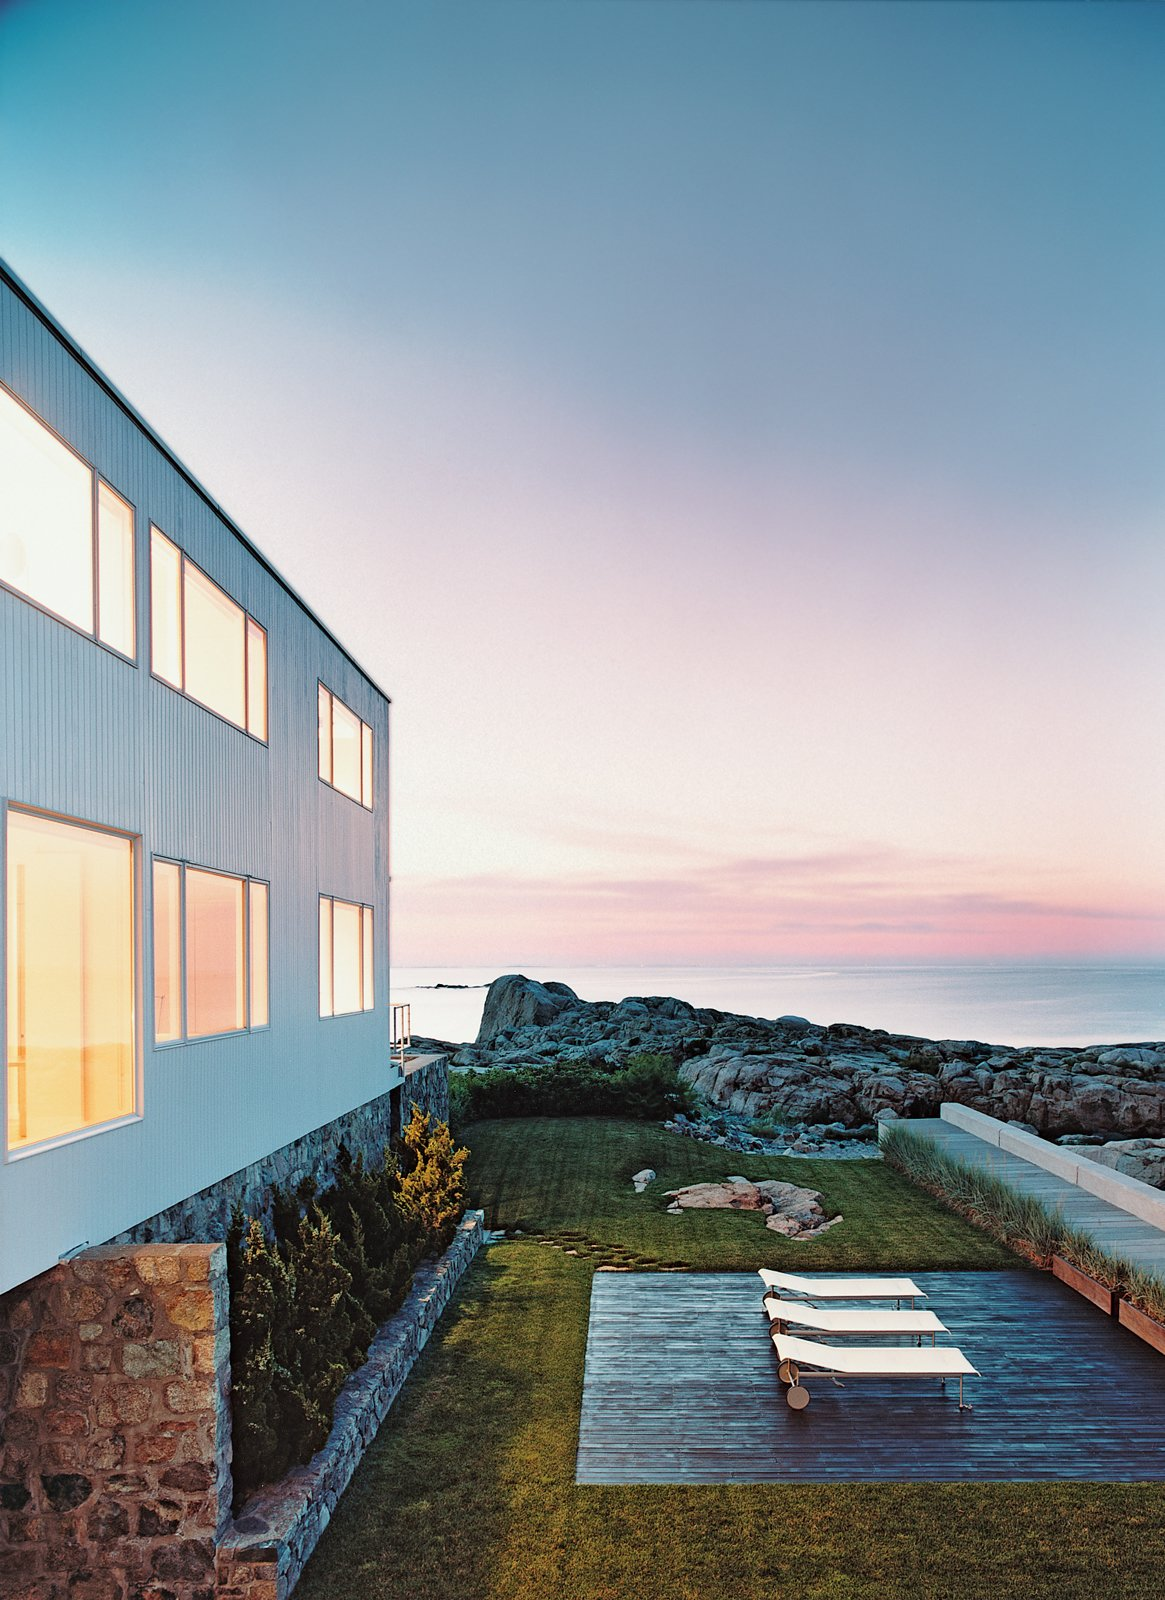 Walter Gropius wanted the Hagerty House, his first commission in the United States, to be as close to the sea as possible. He sited the structure a precarious 20 feet from the shore and let the setting dictate the design. Bauhaus by the Sea - Photo 8 of 9